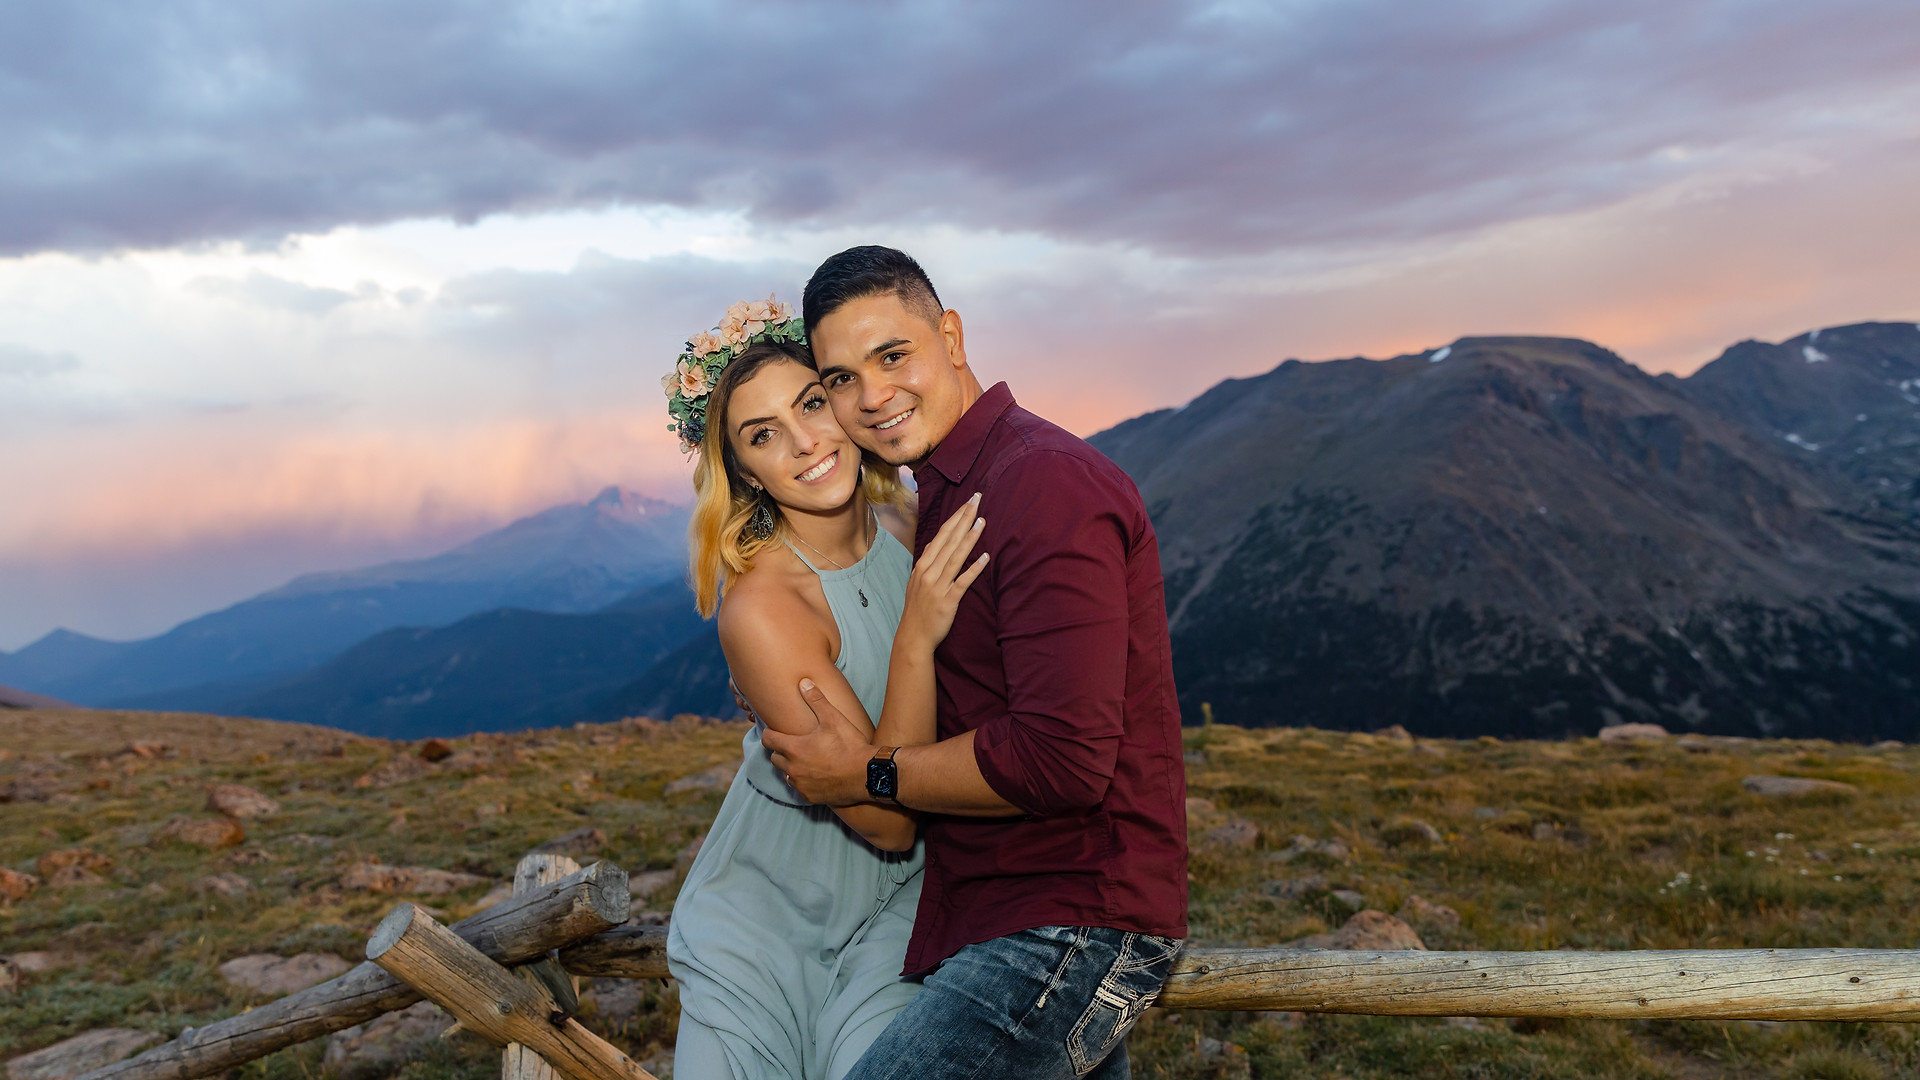 Olivia + Jaime - RMNP Engagement Session